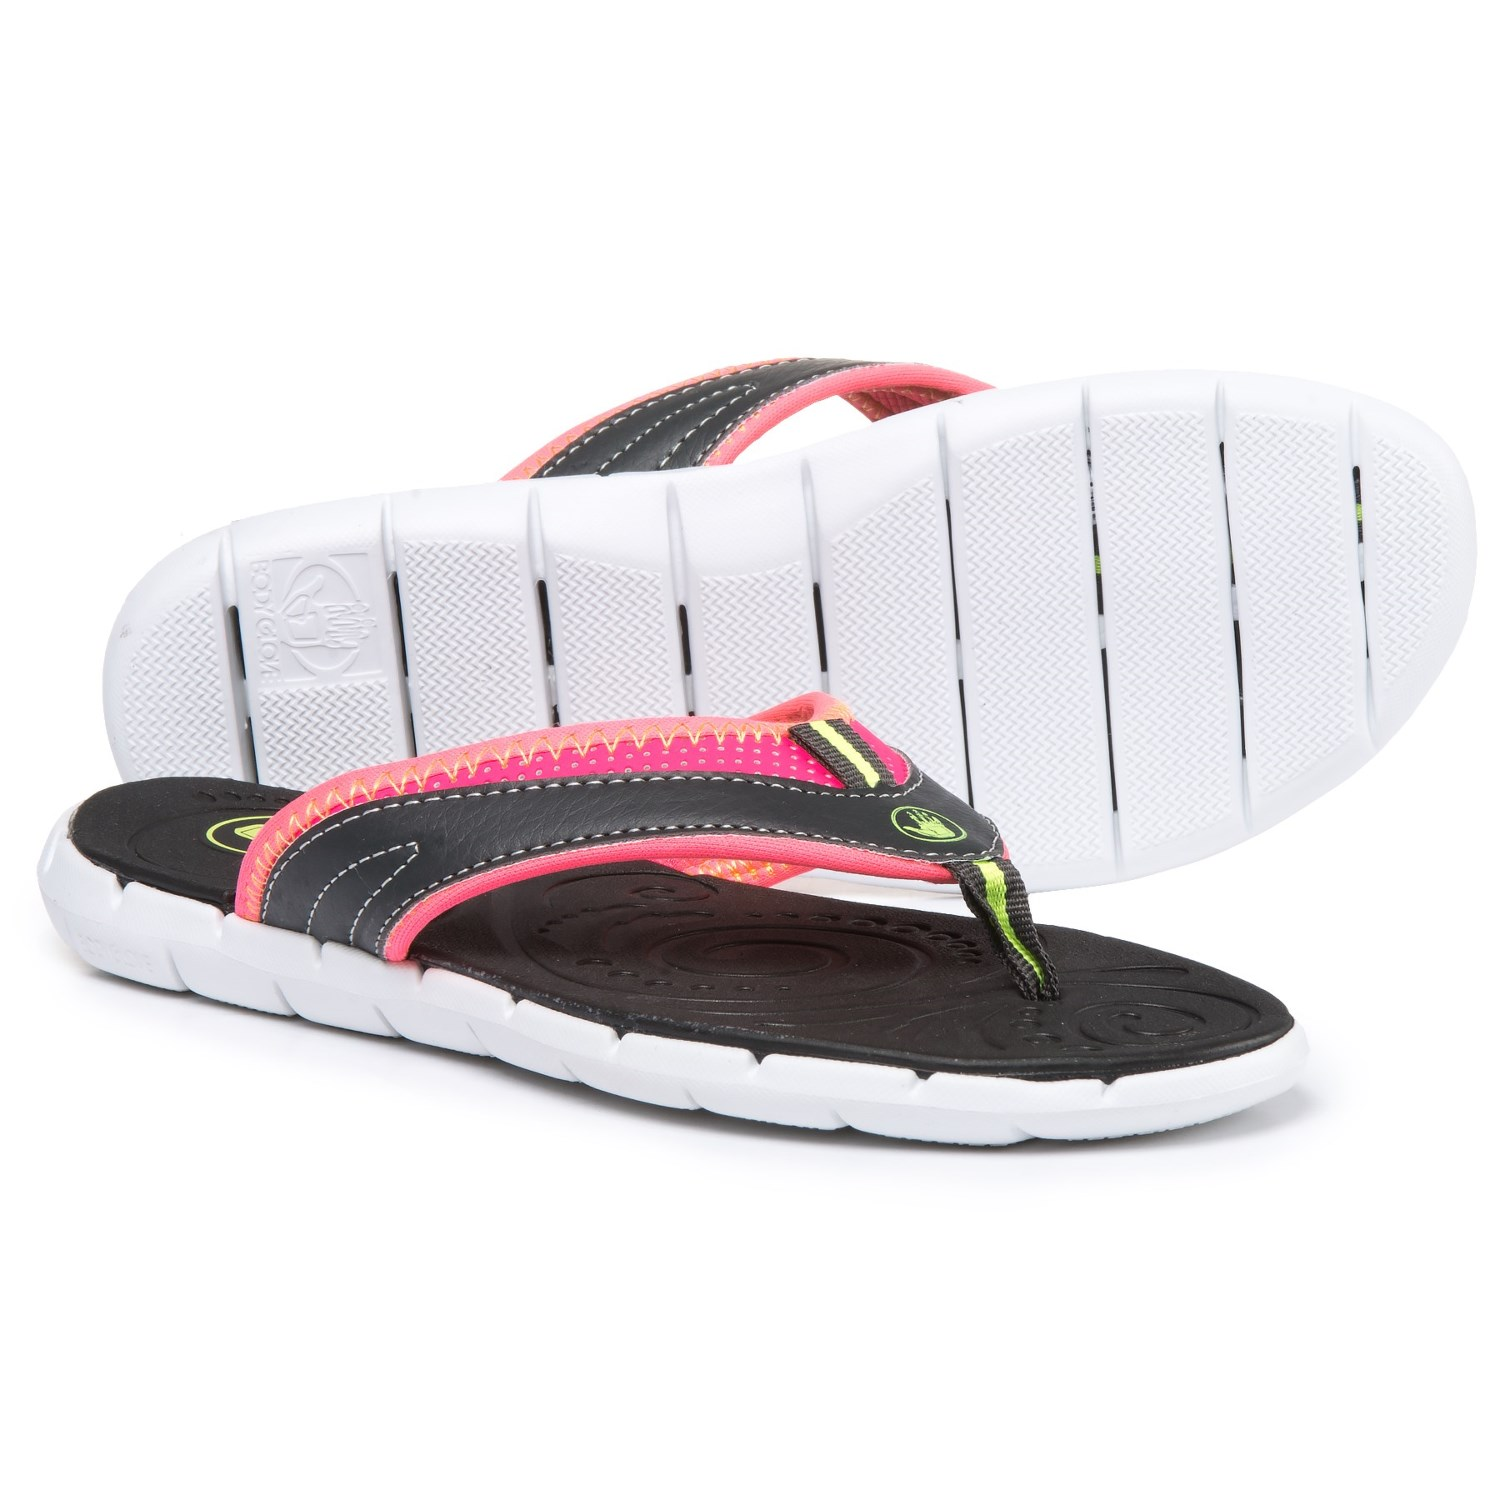 Body Glove Cozy Flip-Flops (For Women)